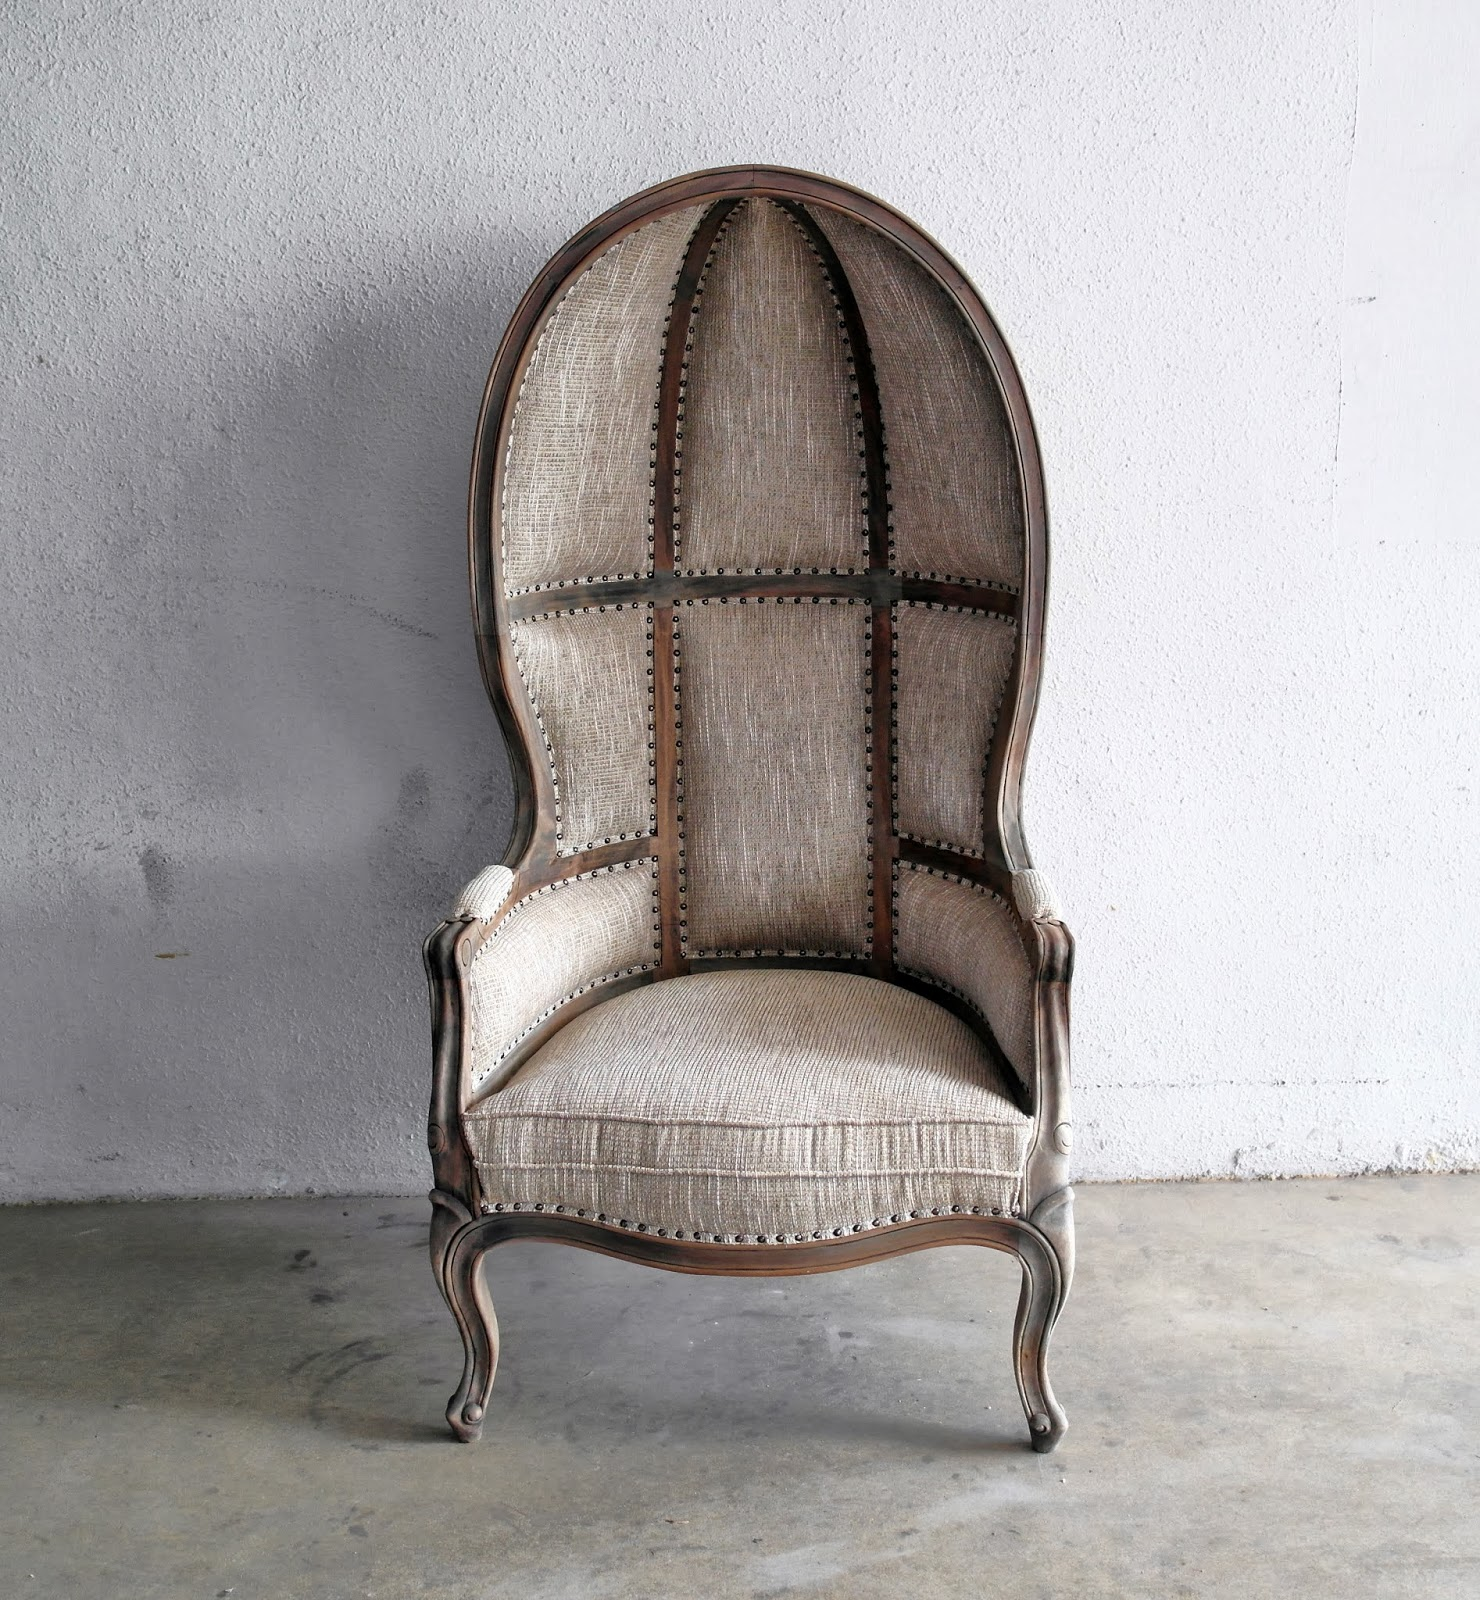 French Canopy Chair In Earthy Brown.